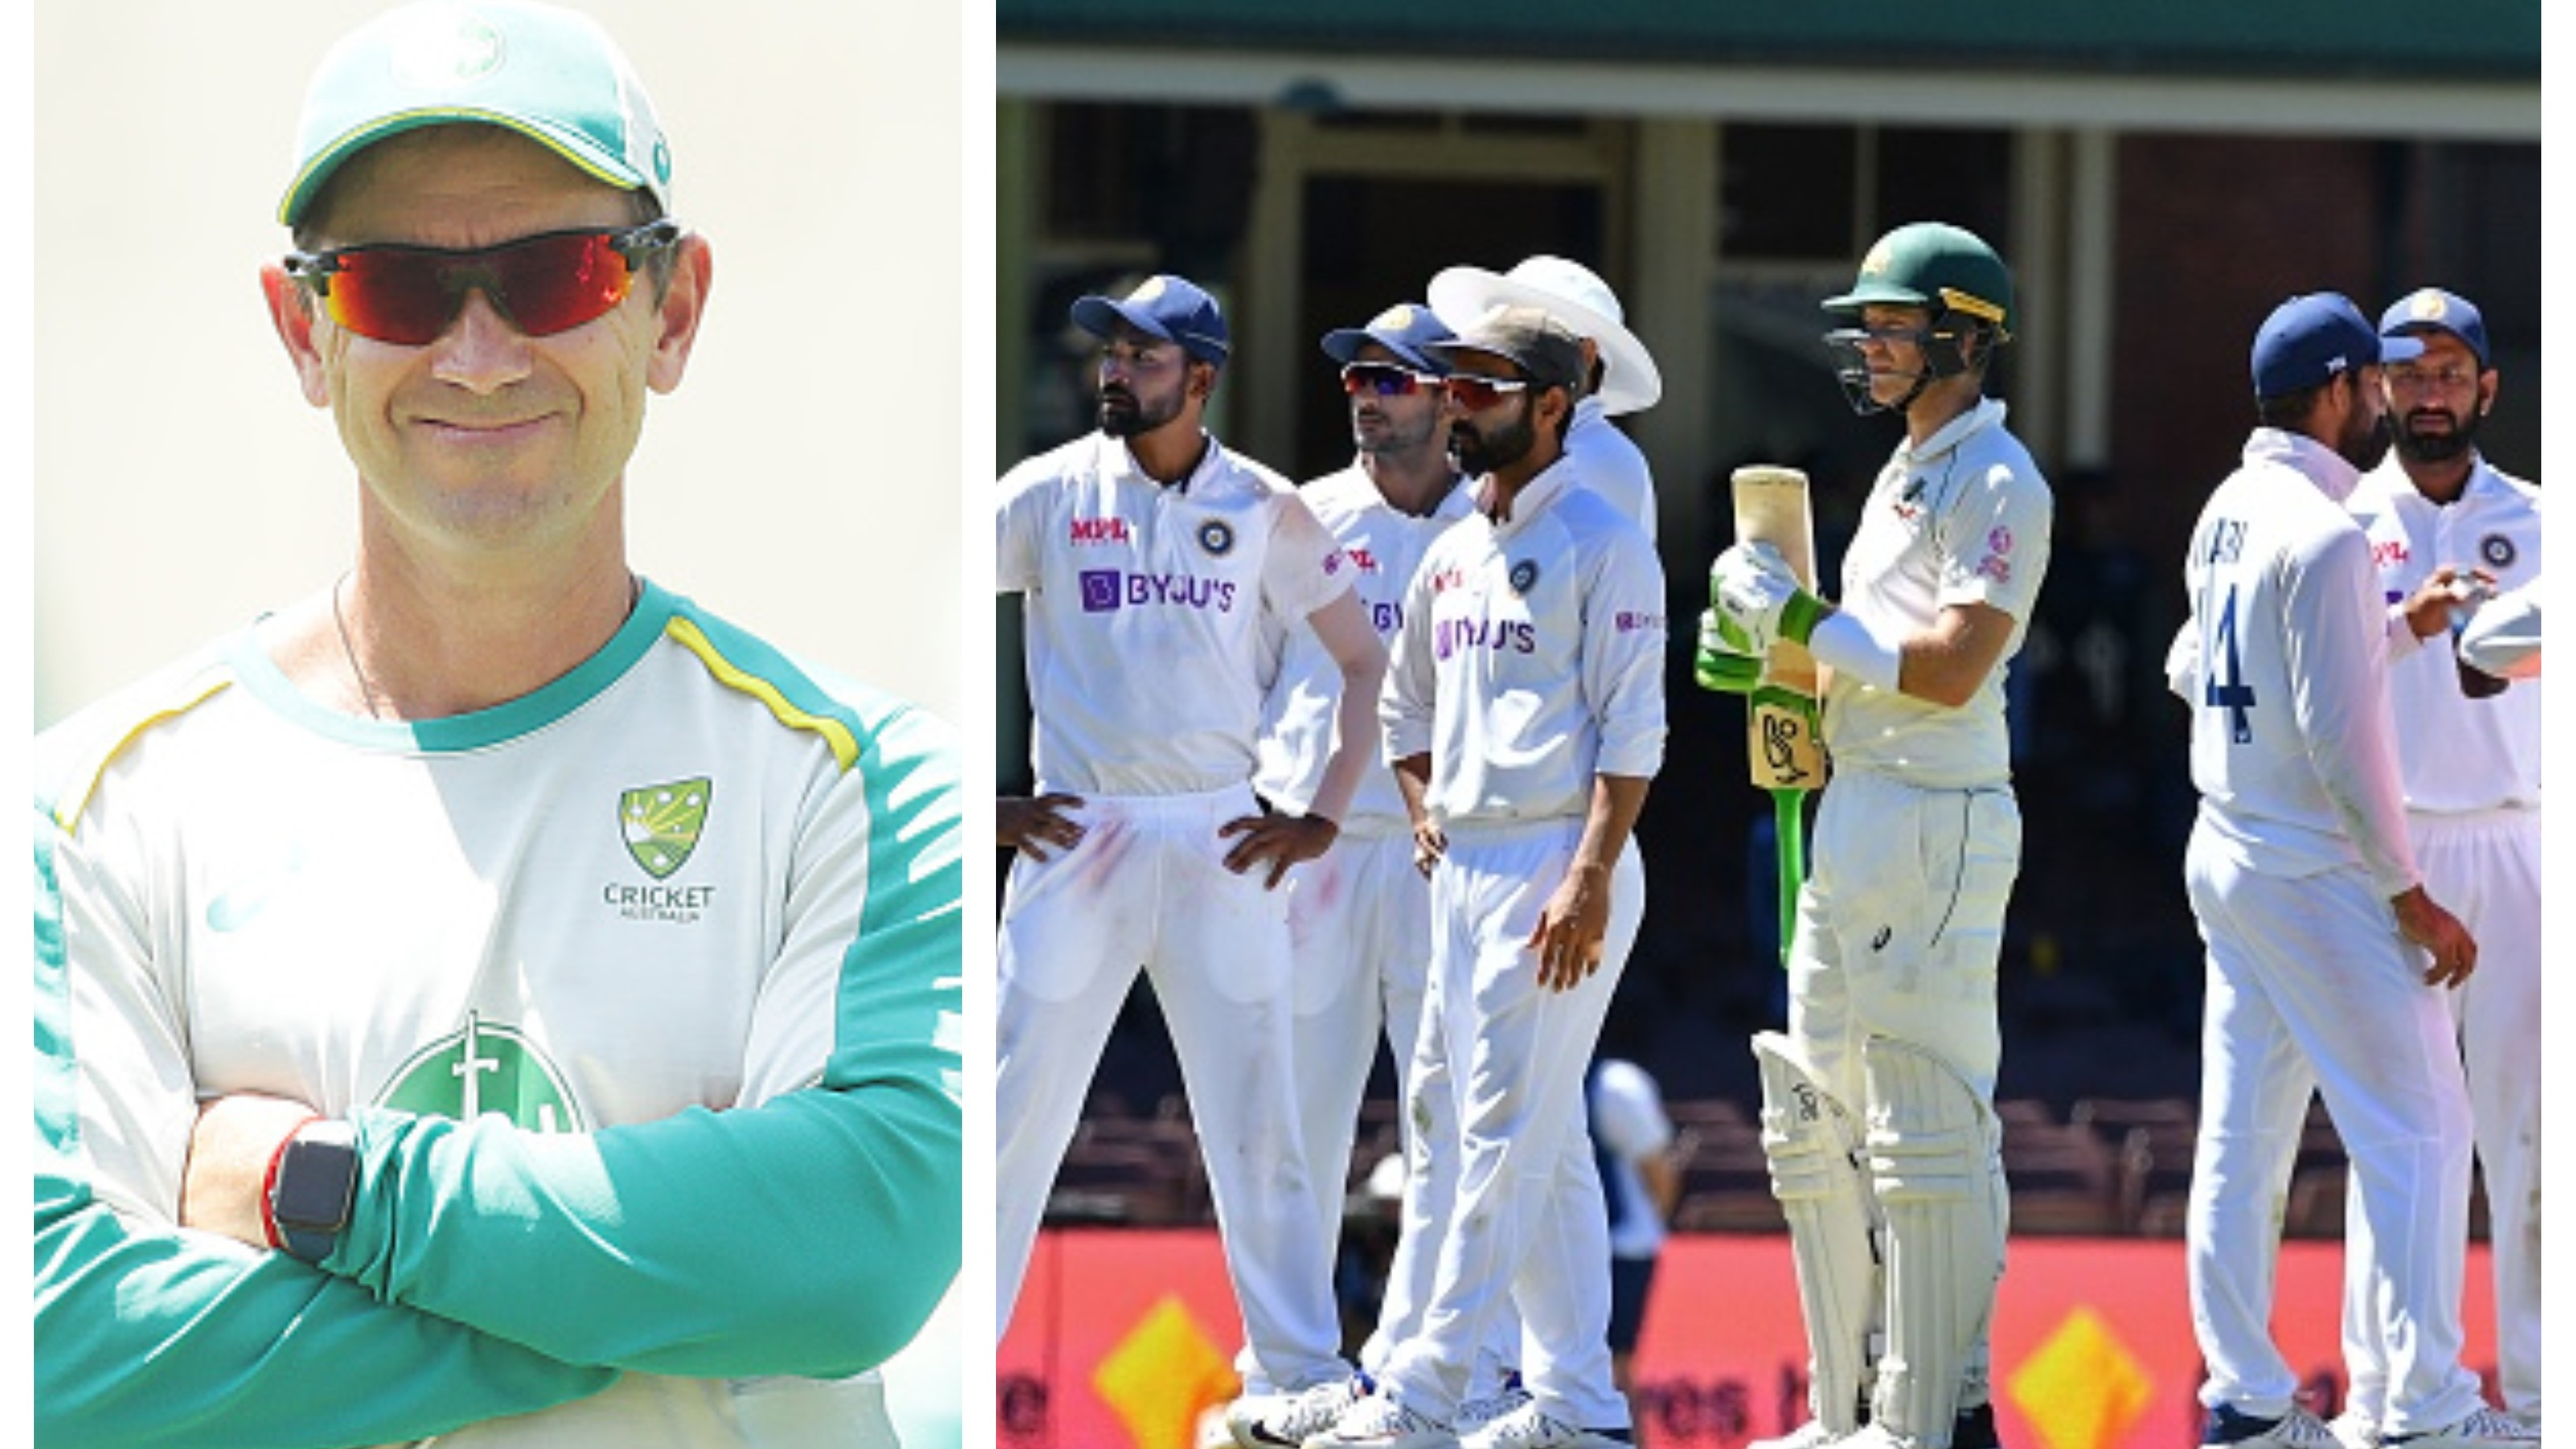 AUS v IND 2020-21: 'He's a class act', Langer praises Paine for joining India huddle as racism hits Sydney Test